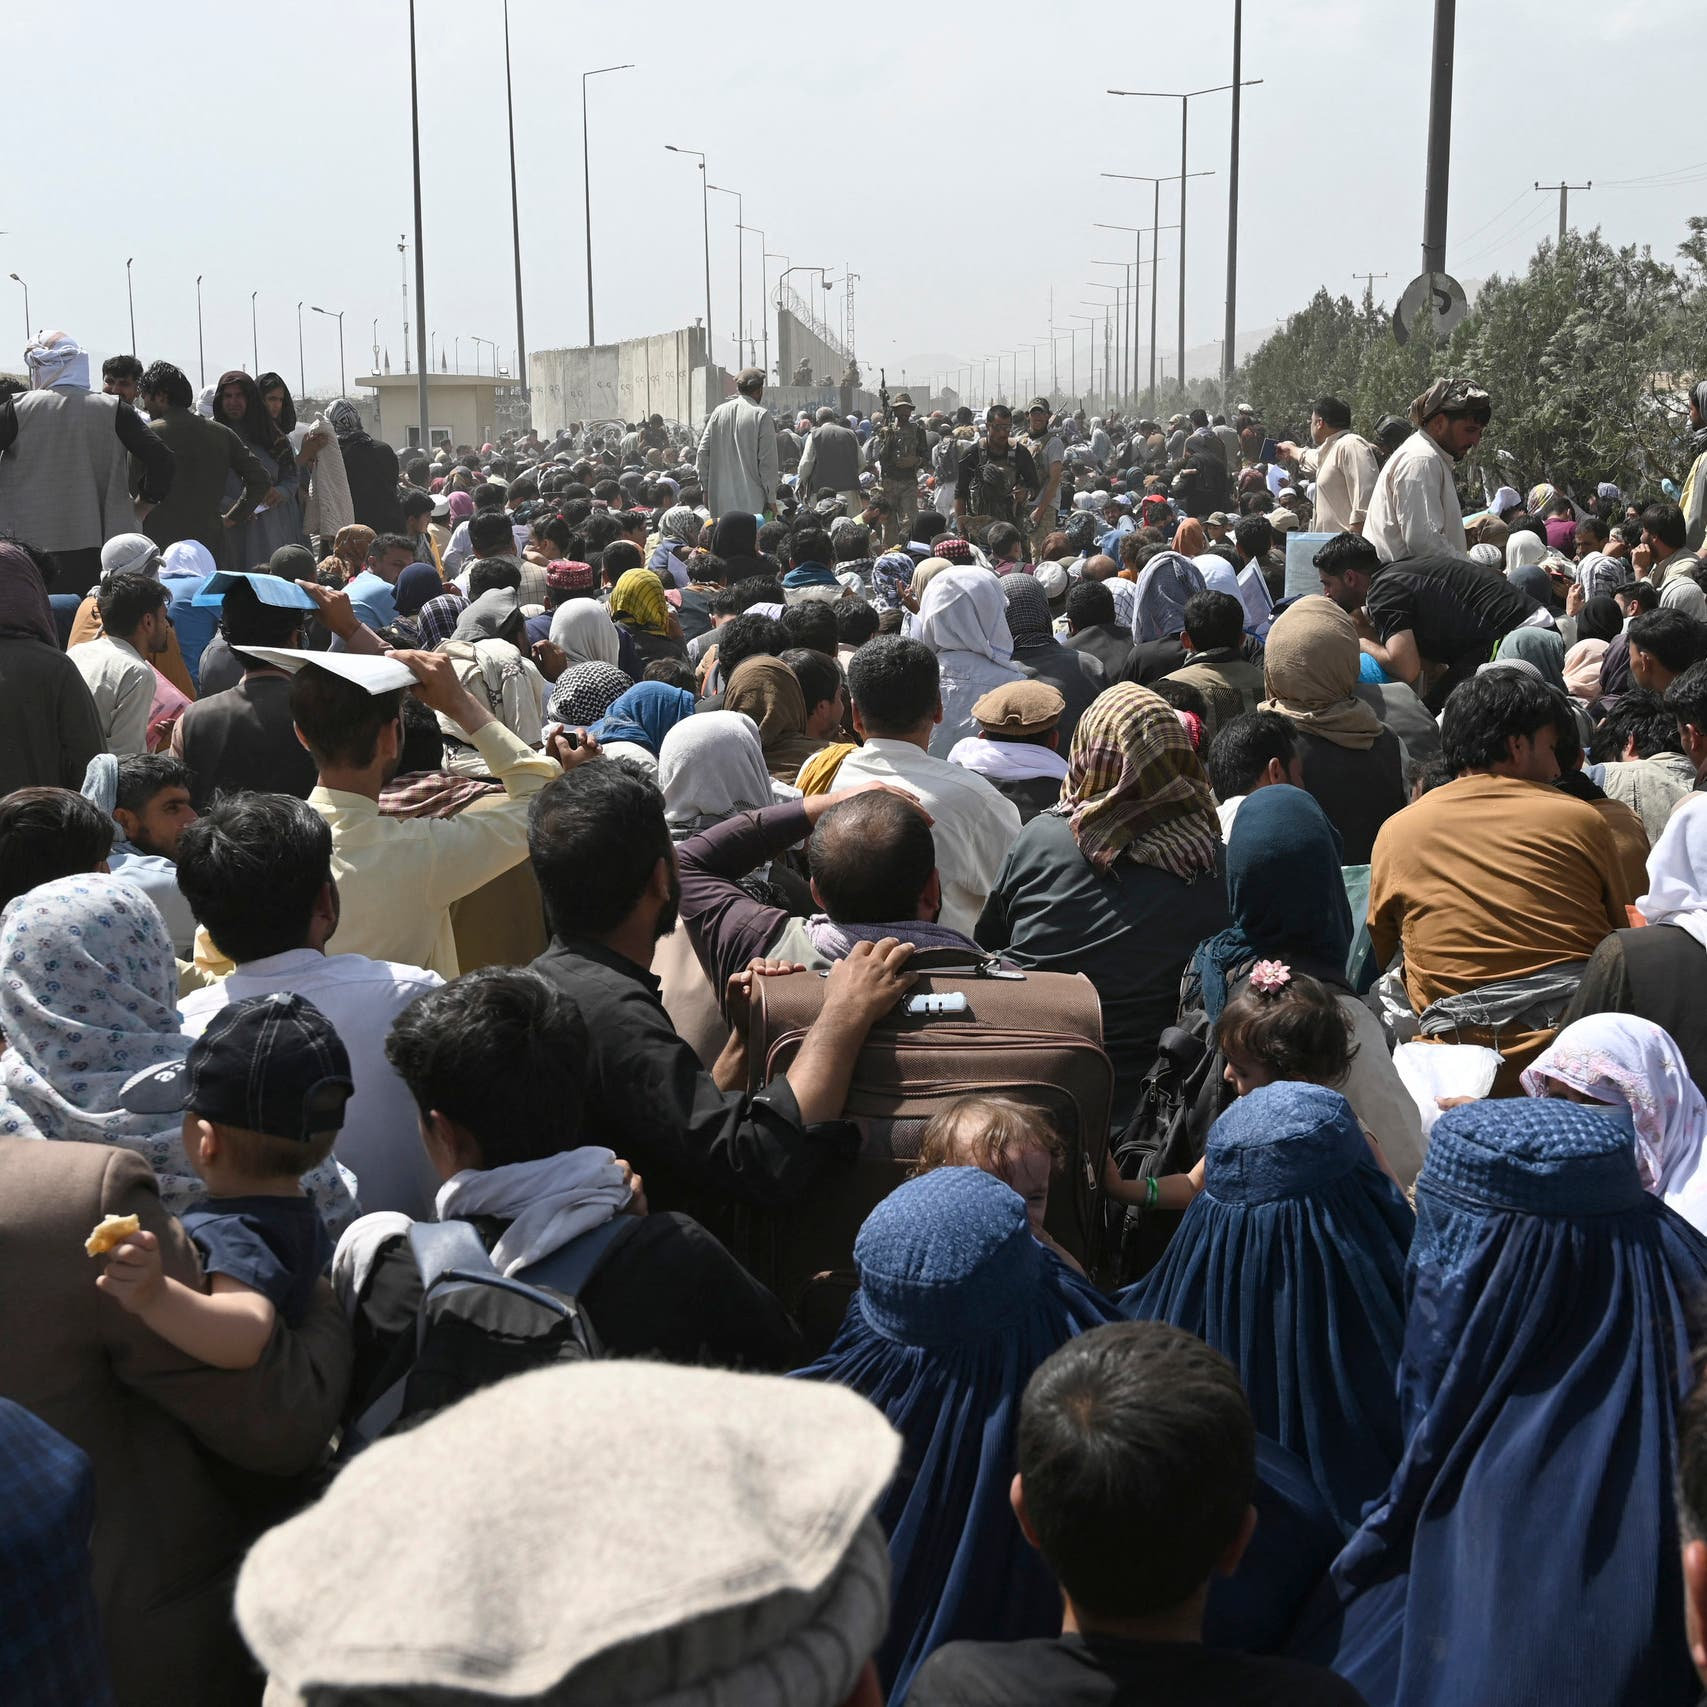 US to blame for chaos at Kabul airport as hundreds attempt to flee: Taliban official